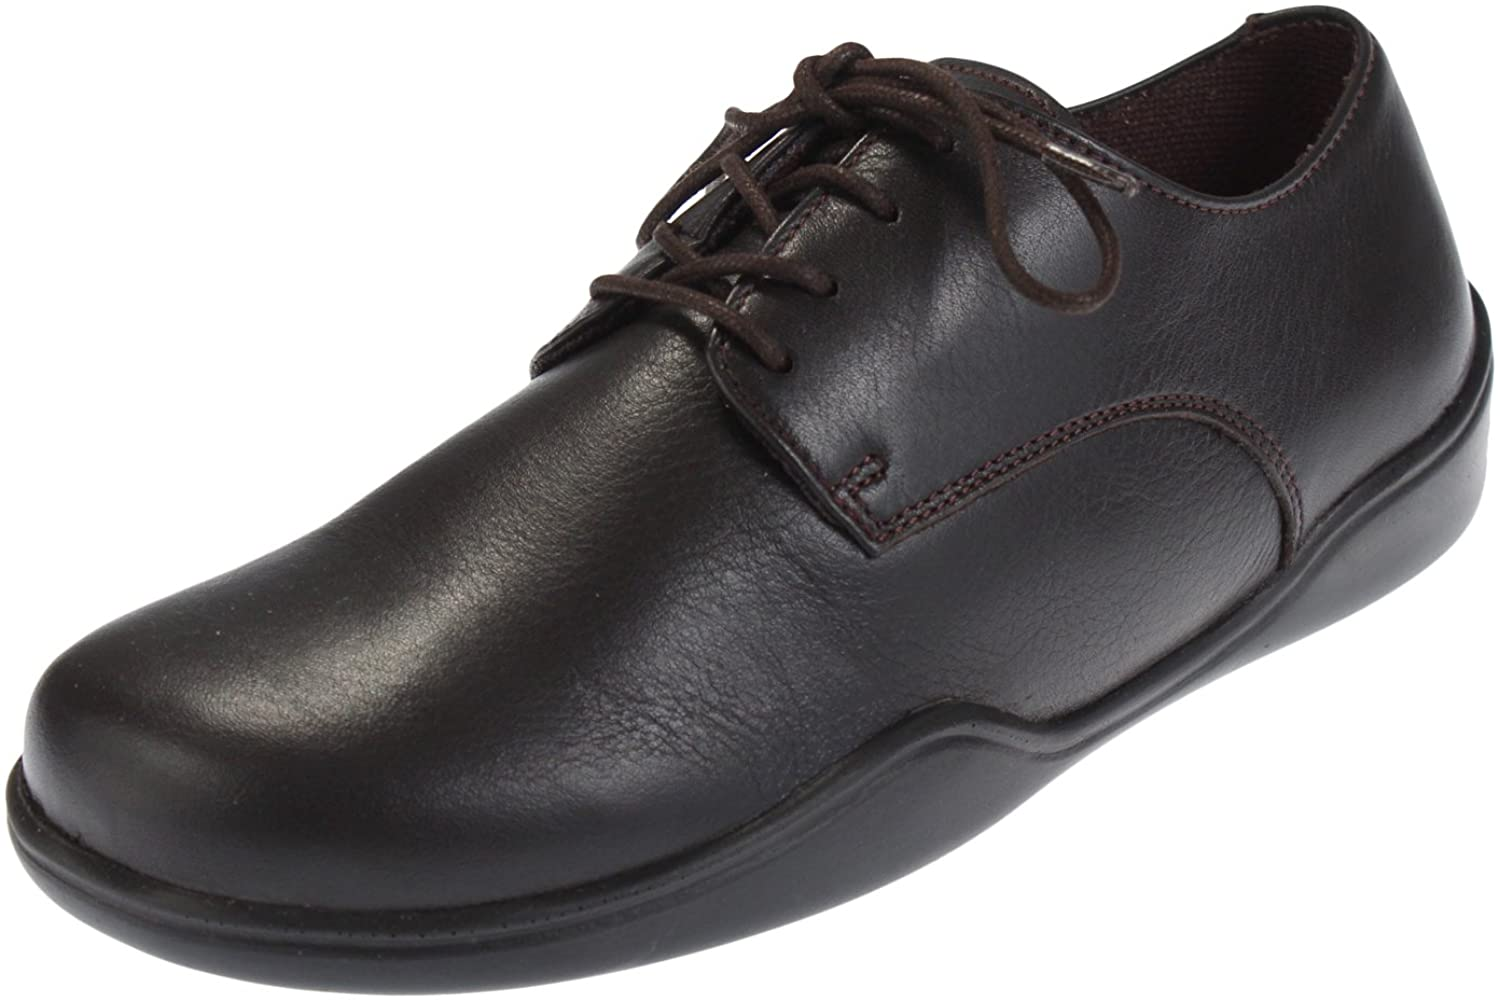 FOOTPRINTS Muenchen Womens Lace-up Oxford Shoe